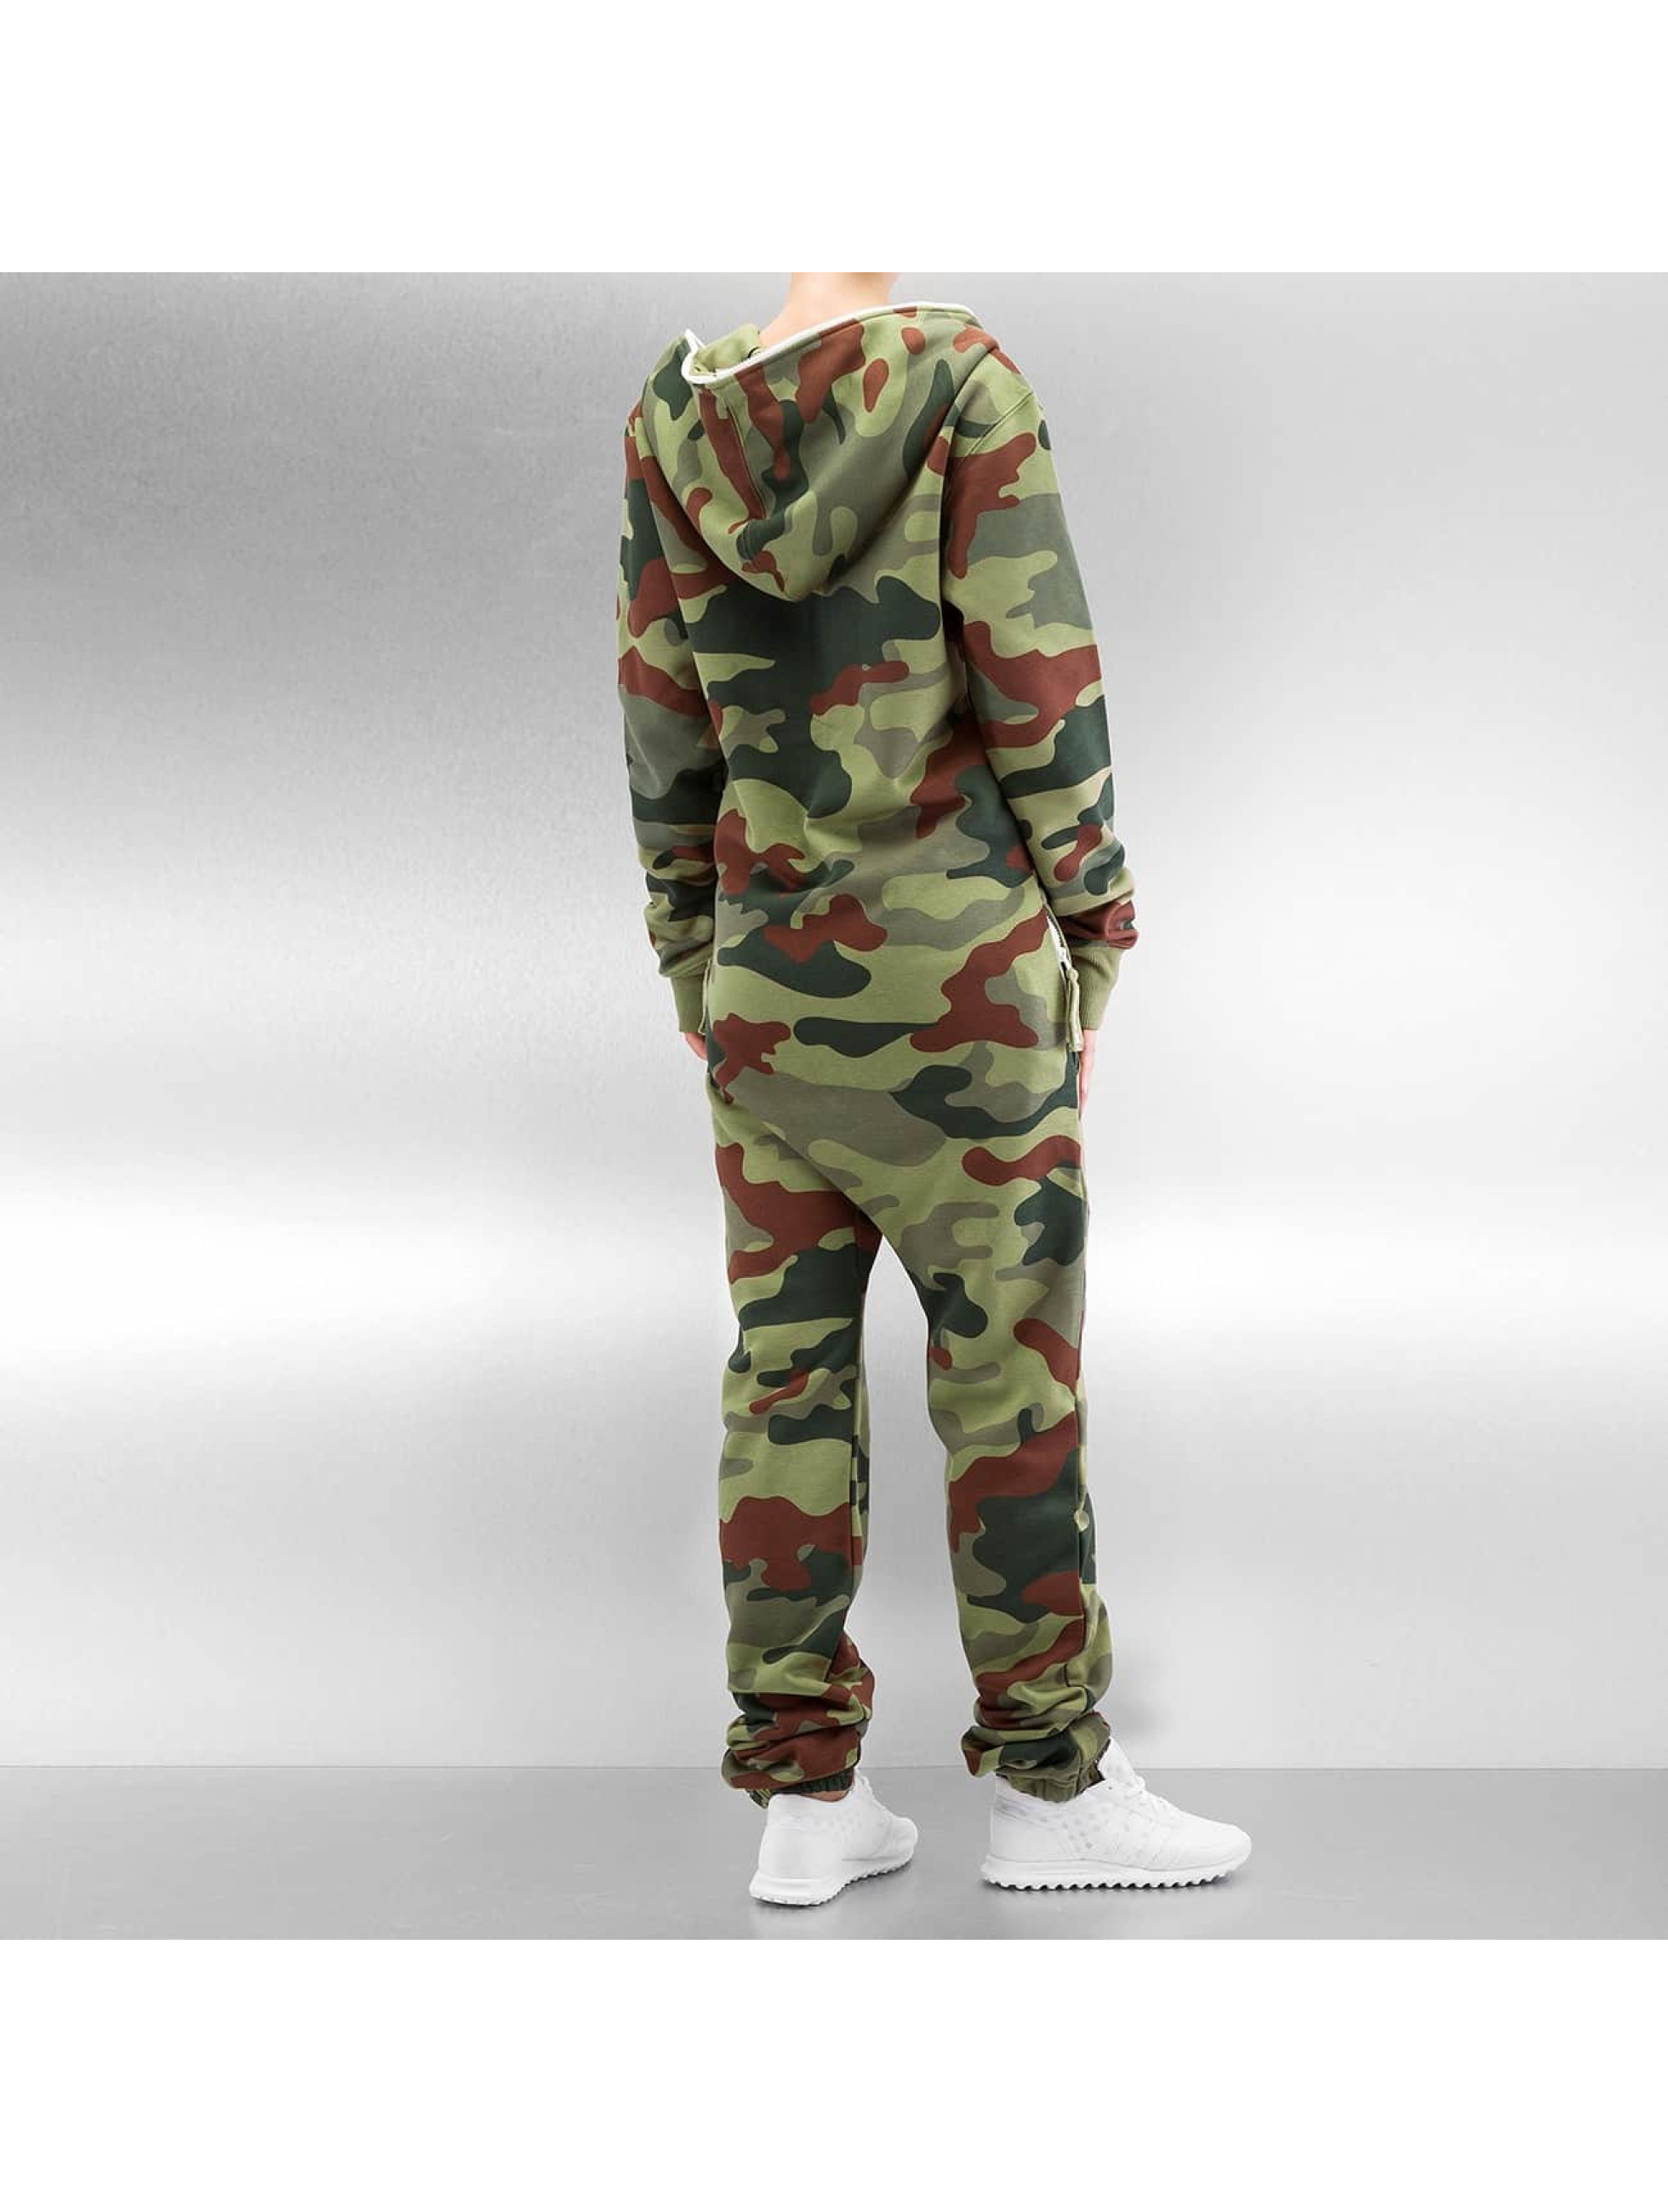 OnePiece Jumpsuits Camouflage camouflage